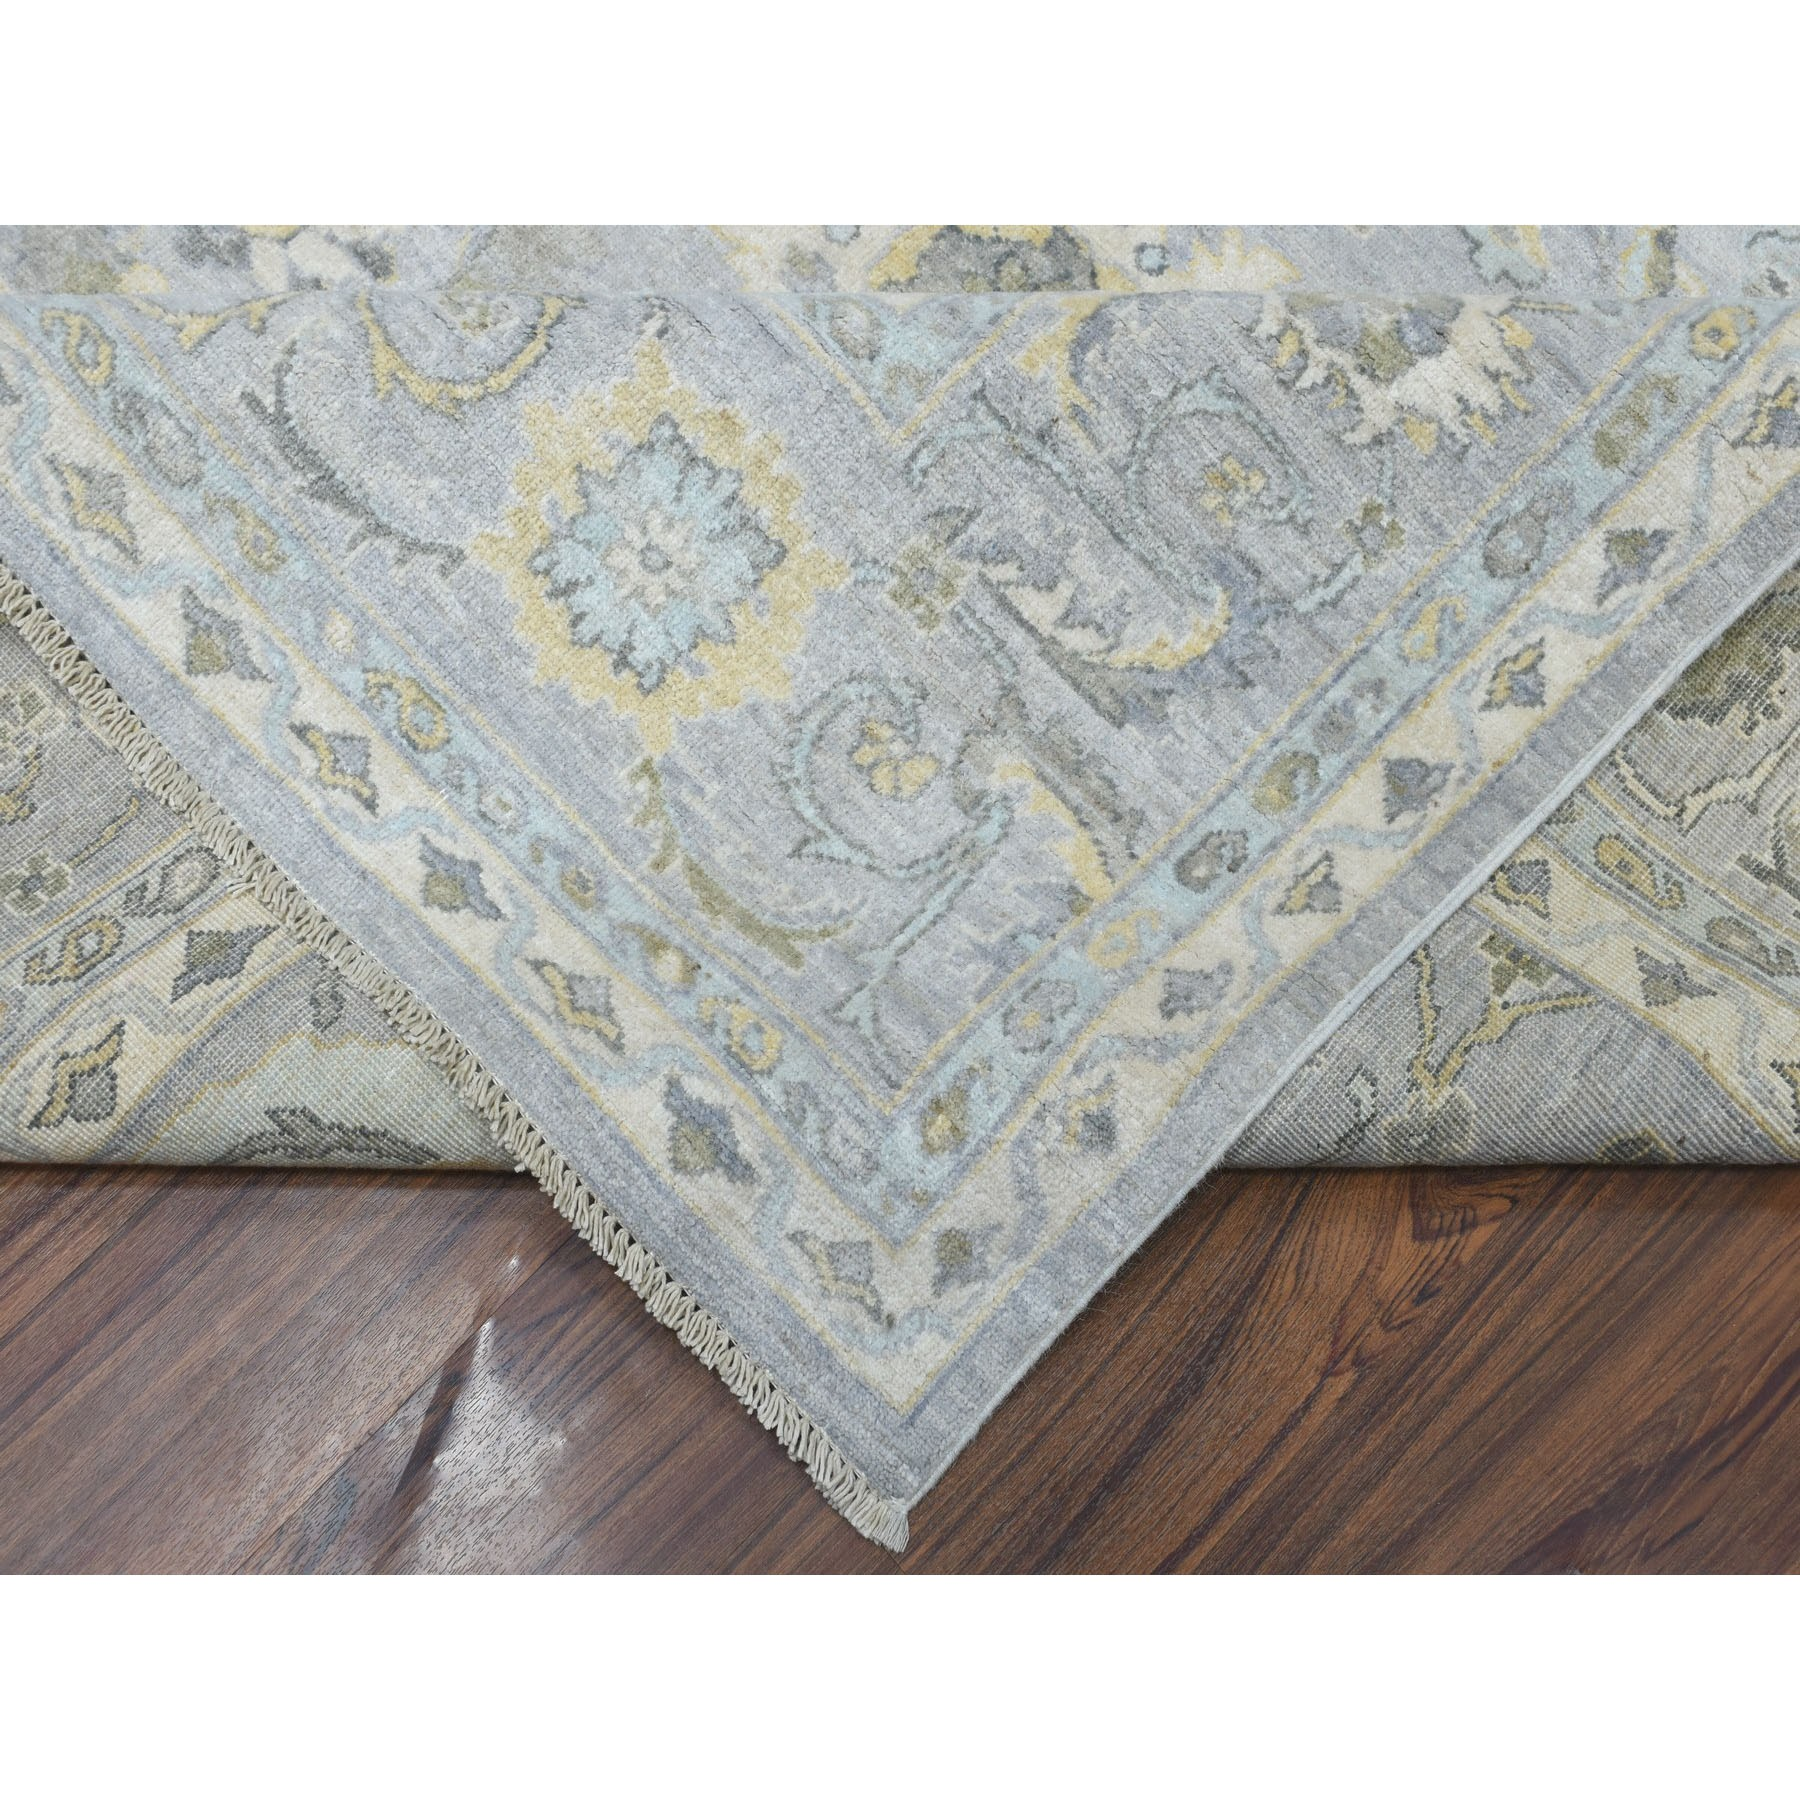 "9'x12'4"" Oversized White Wash Peshawar 100% Wool Hand Knotted Oriental Rug"